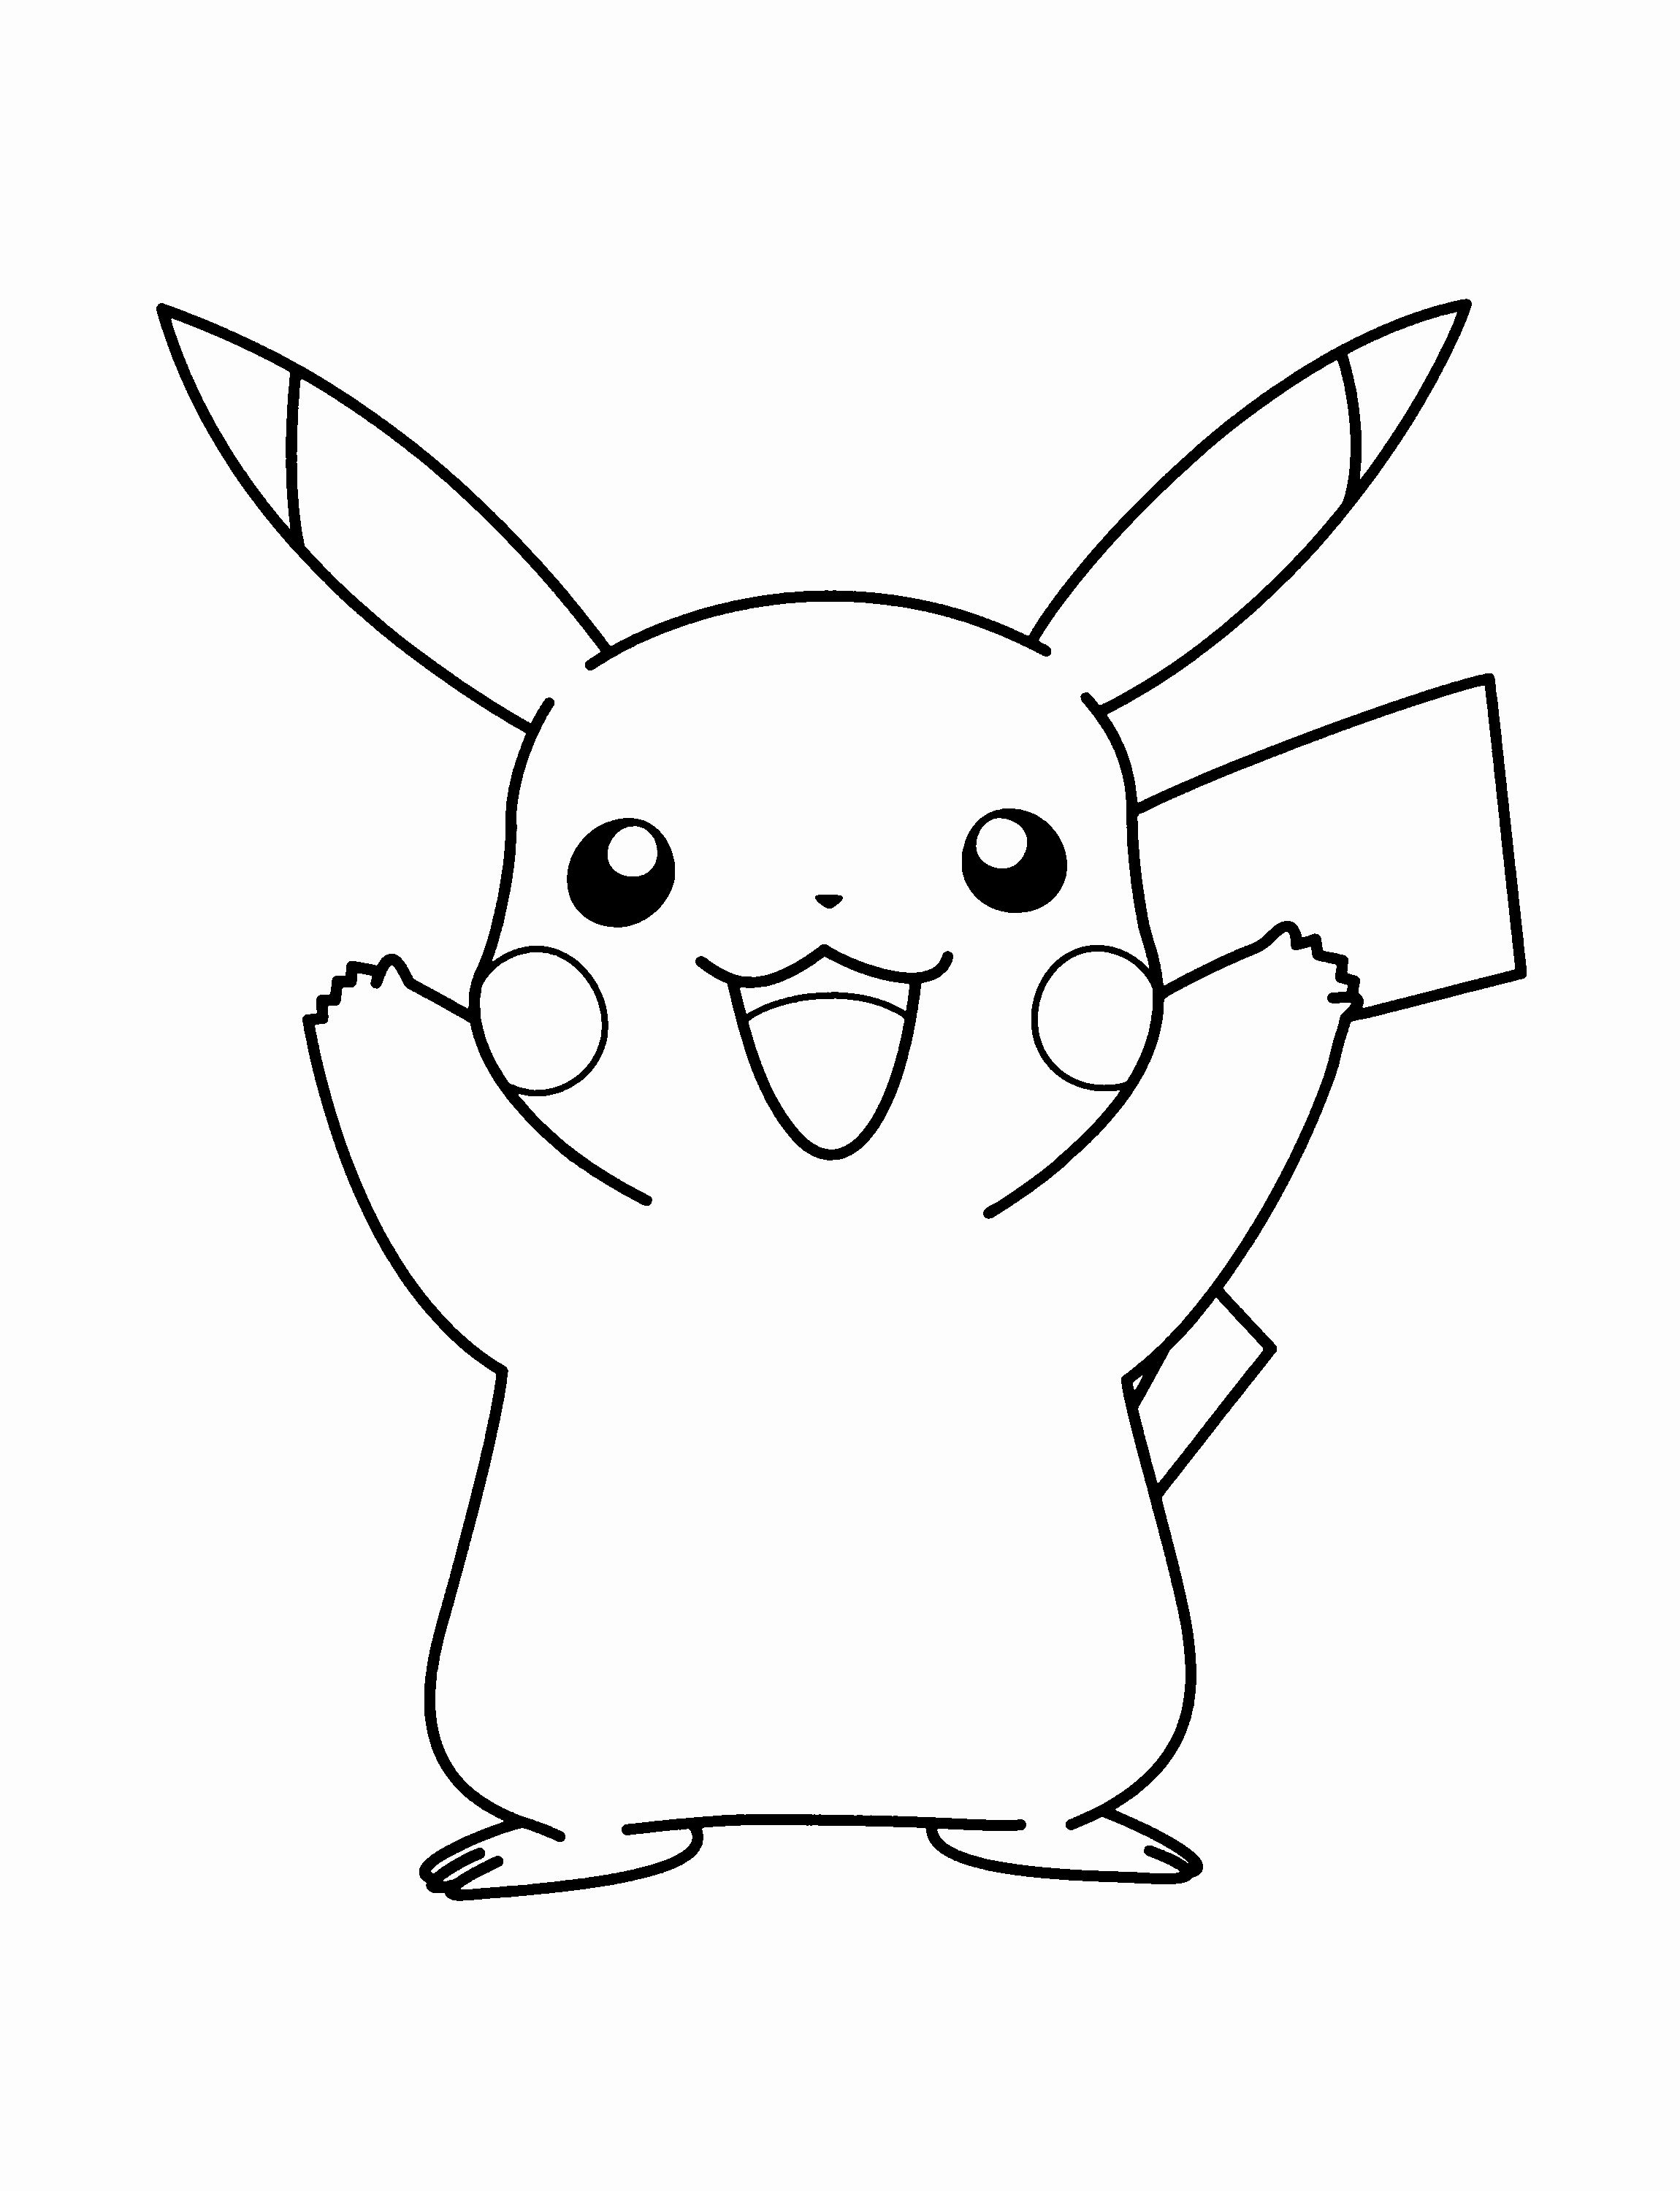 pikachu face coloring page a new set of printable coloring pages is available for you page coloring face pikachu